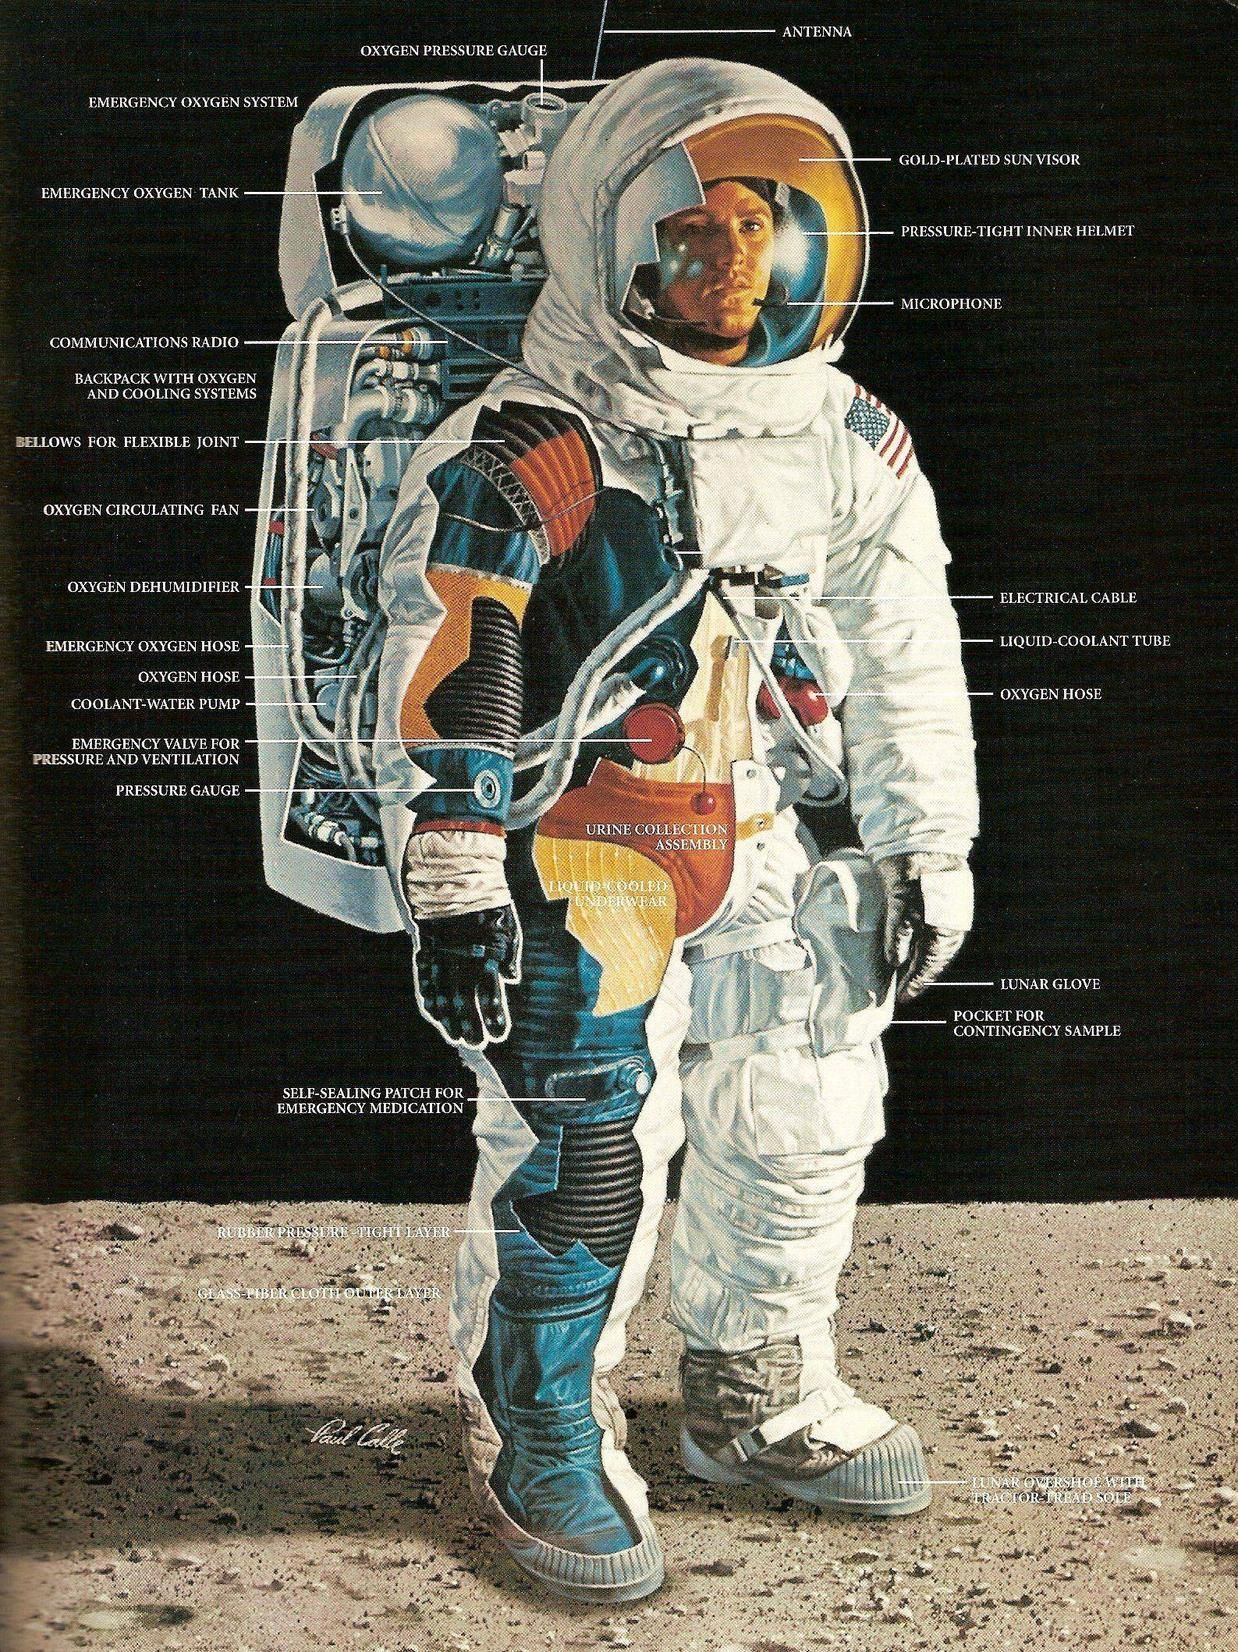 an astronaut in a space suit is motionless in outer space - photo #35